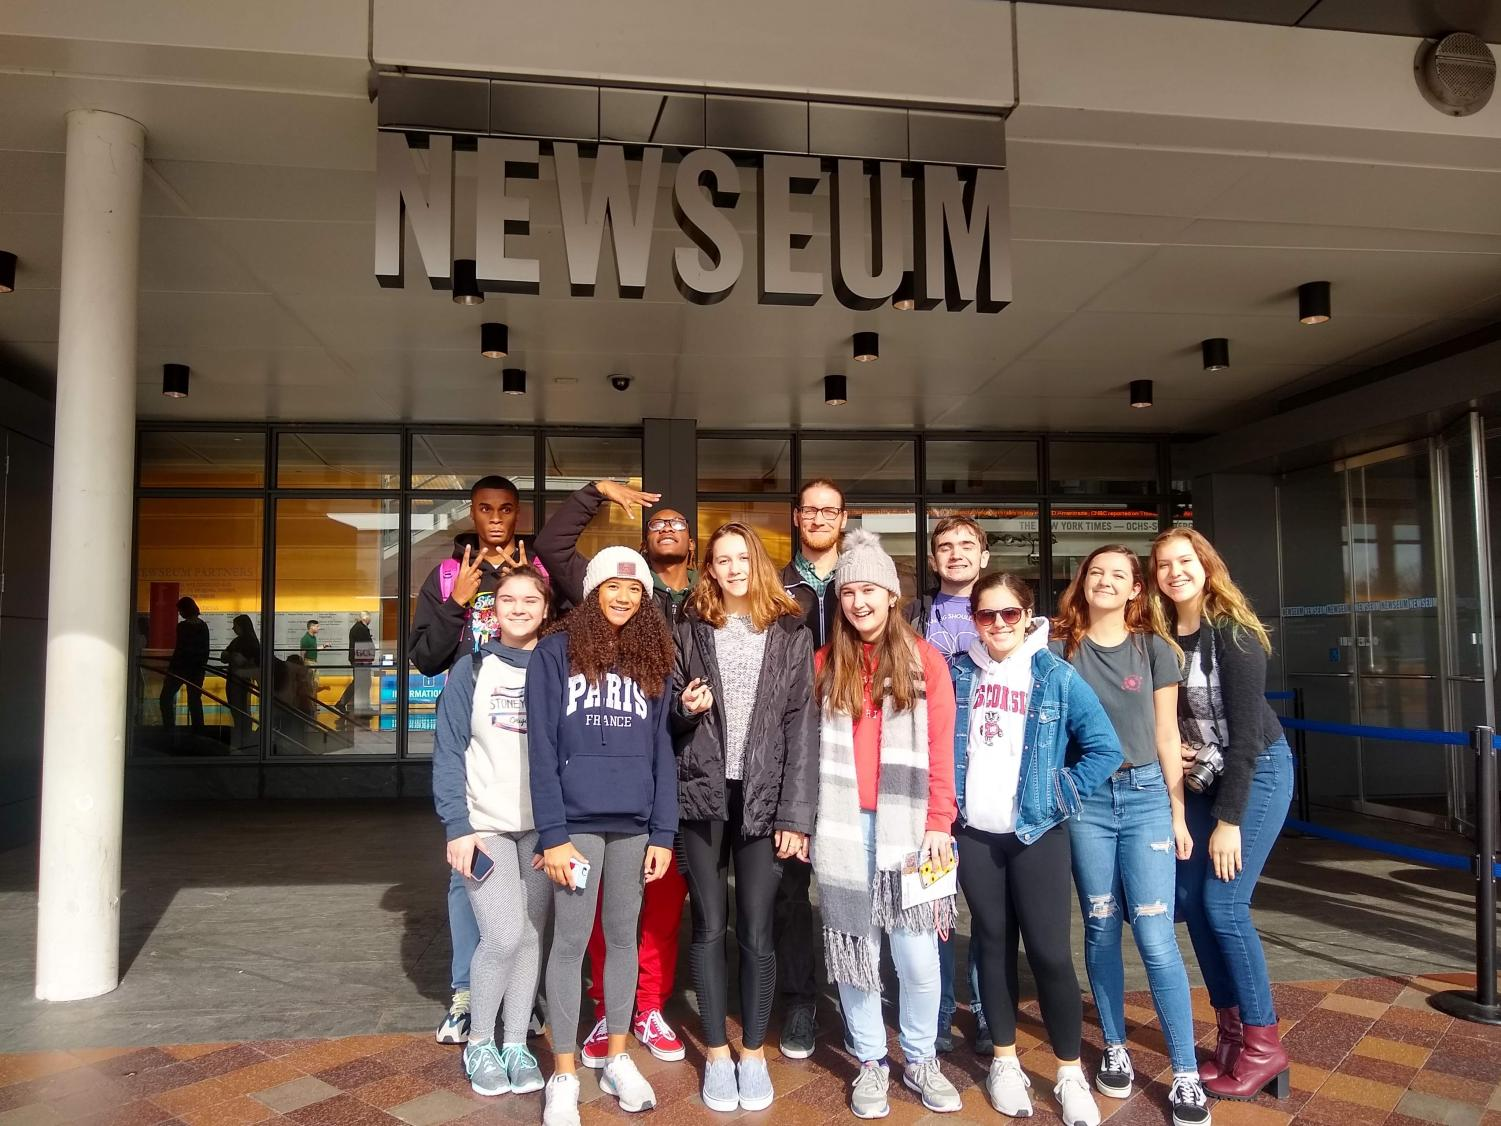 "Newspaper and yearbook staff smile in front of the Newseum after exploring the exhibits. ""I'm really glad I got to visit the Newseum before it closes this year. It's such a fun and interactive space, and I hope they find a way to reopen it in the future,"" said Fischer."